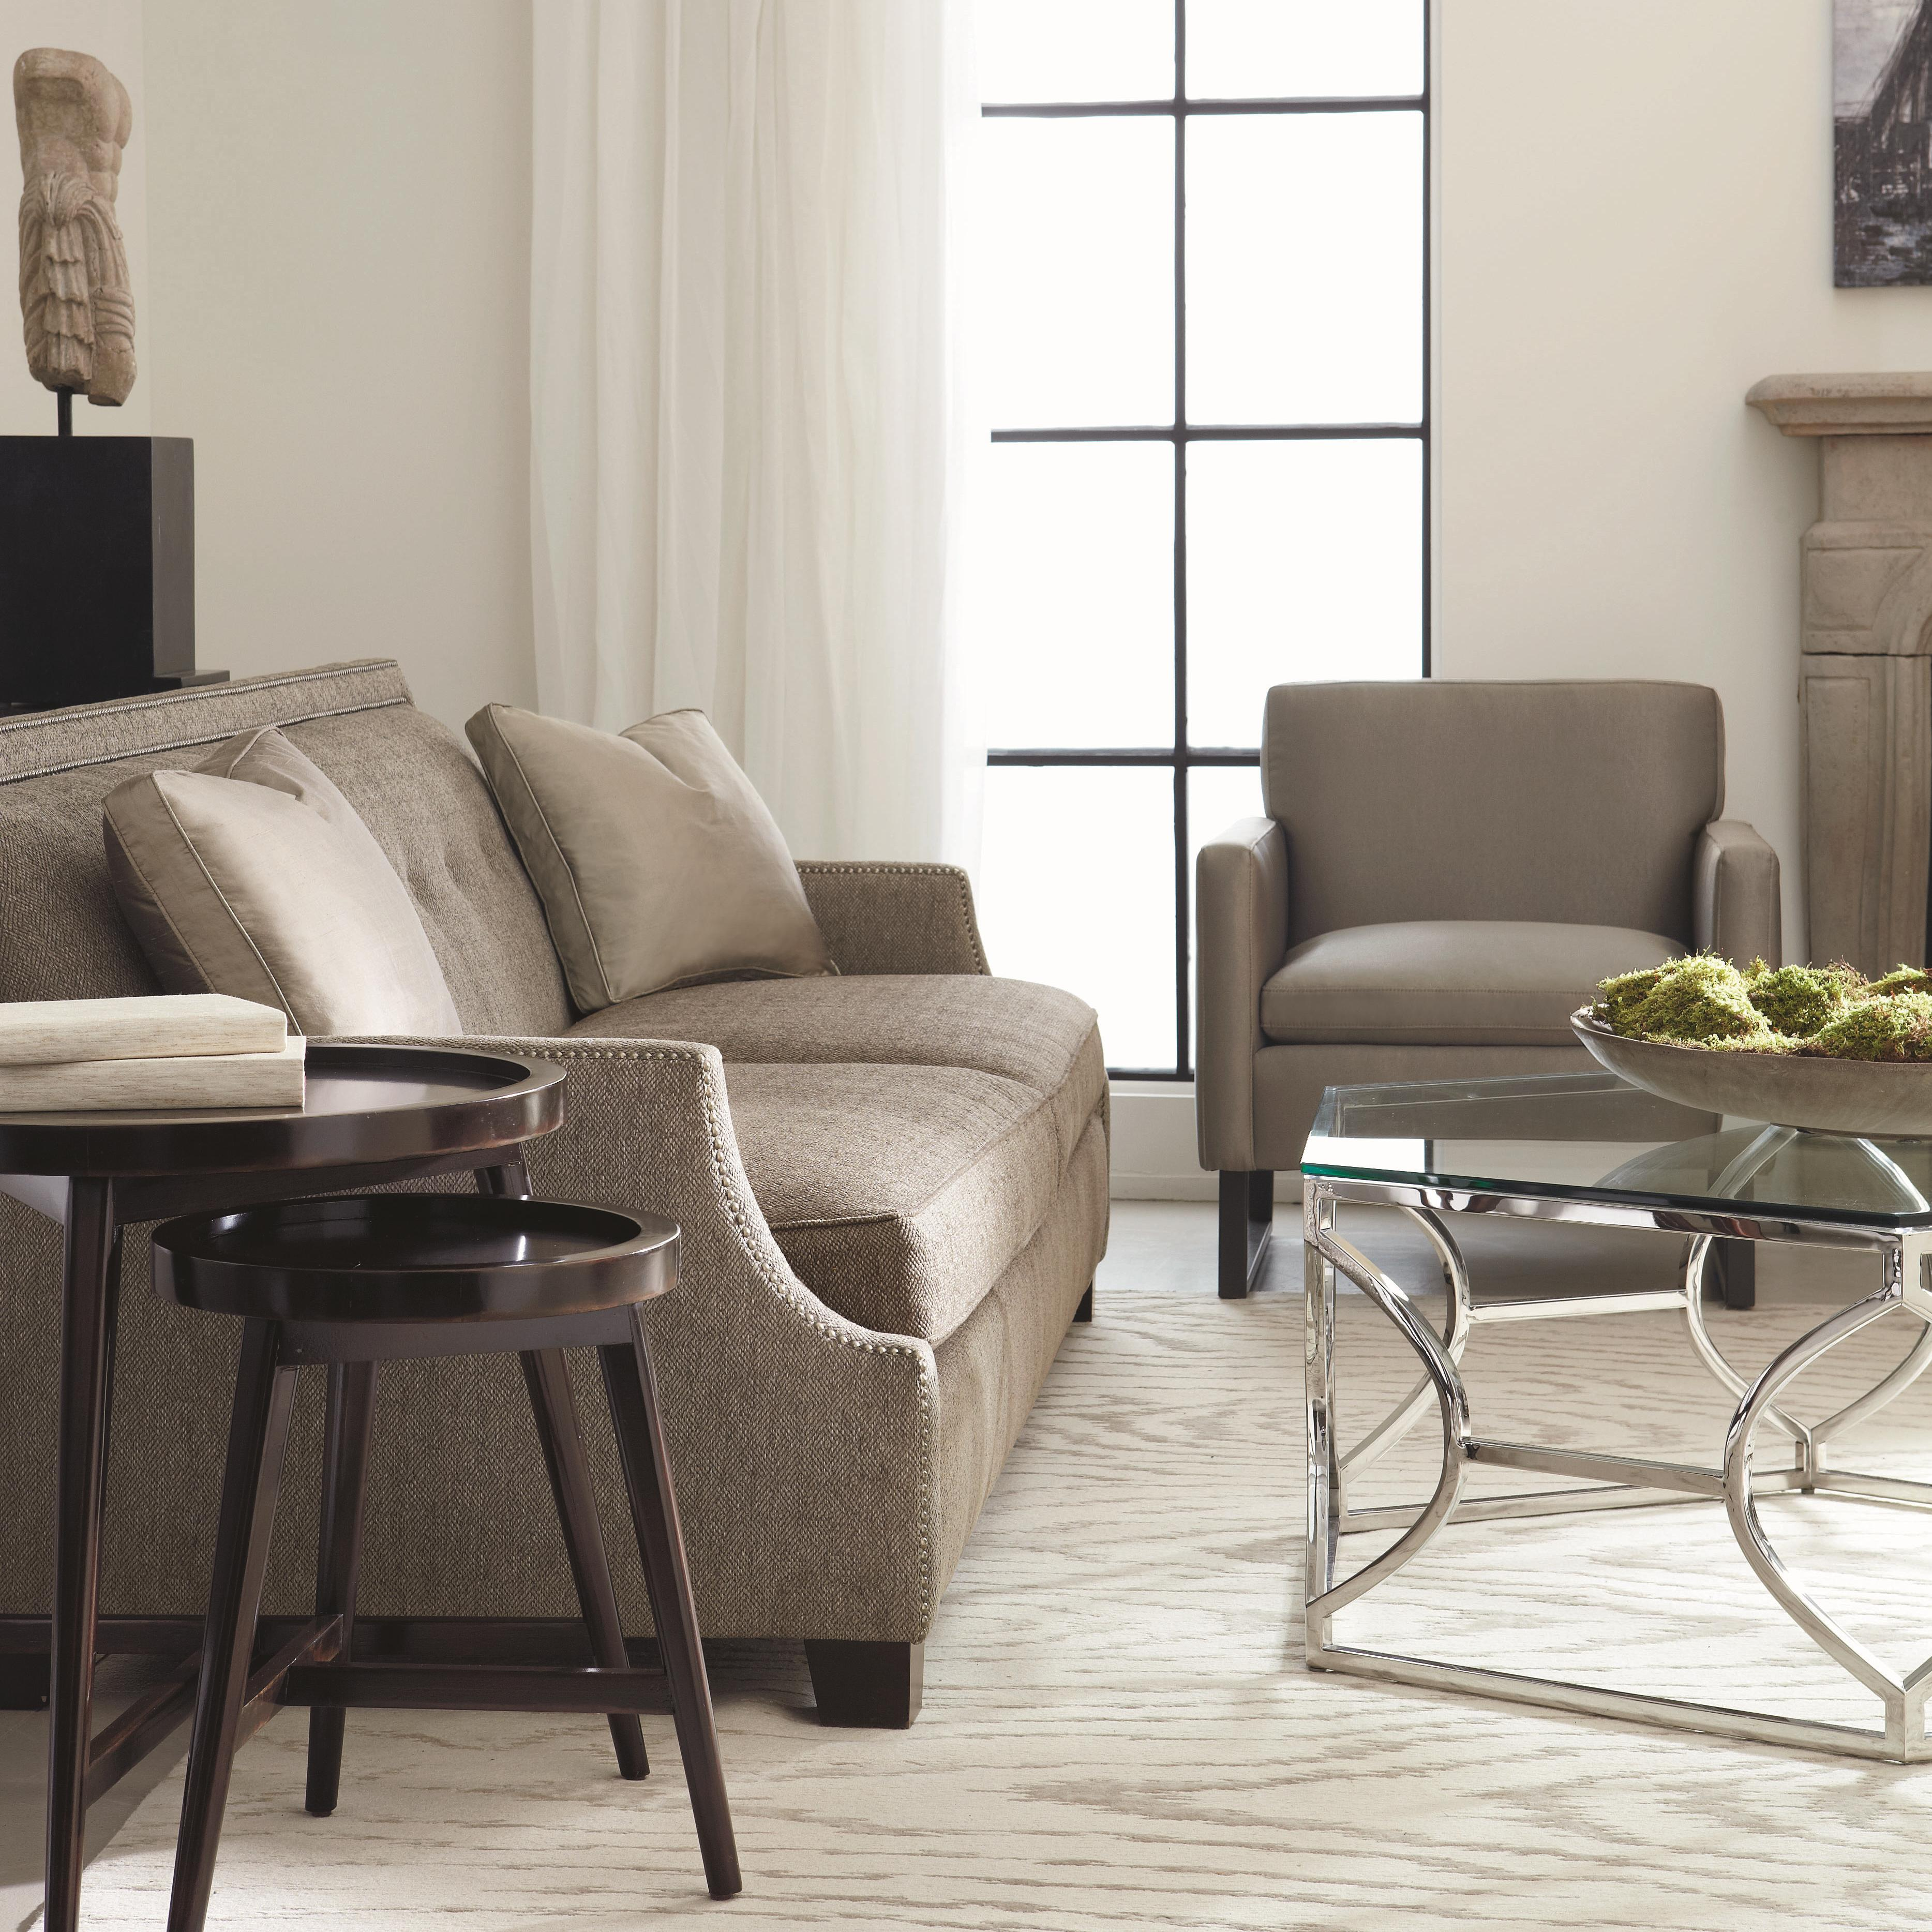 Charmant Bernhardt Interiors   Franco Sectional Sofa | Sprintz Furniture | Sofa  Sectional Nashville, Franklin, And Greater Tennessee